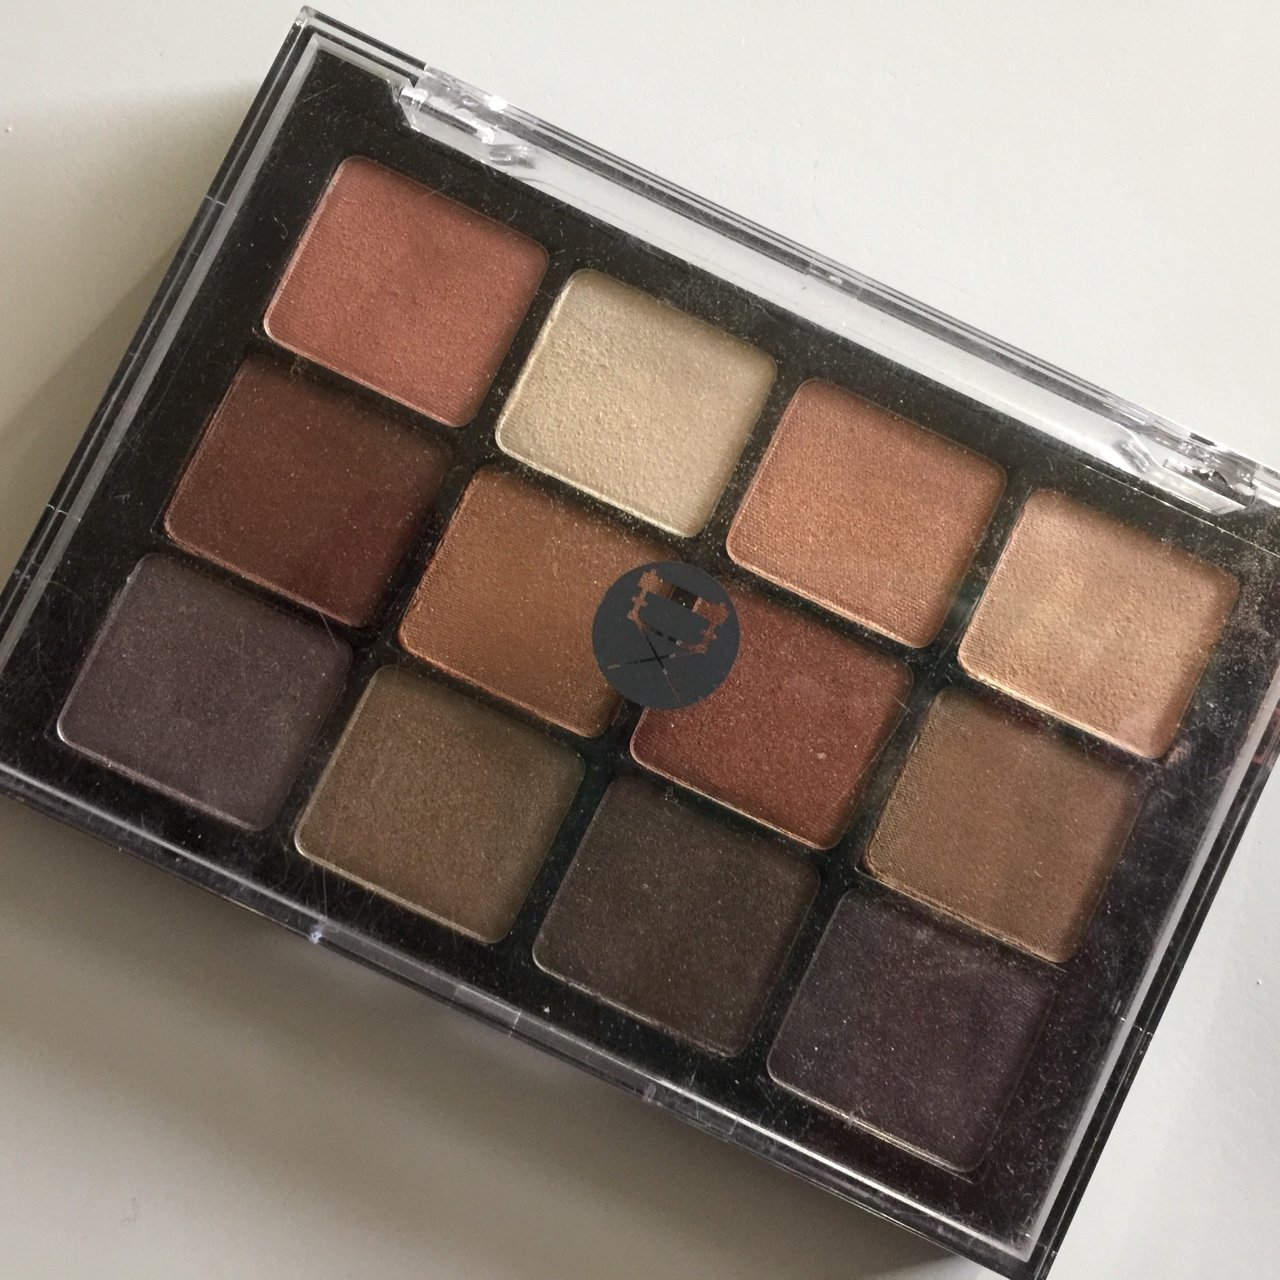 Viseart Paris Nude Used 4x Xooxox Such A Gorgeous Palette Depop 06 Nudes